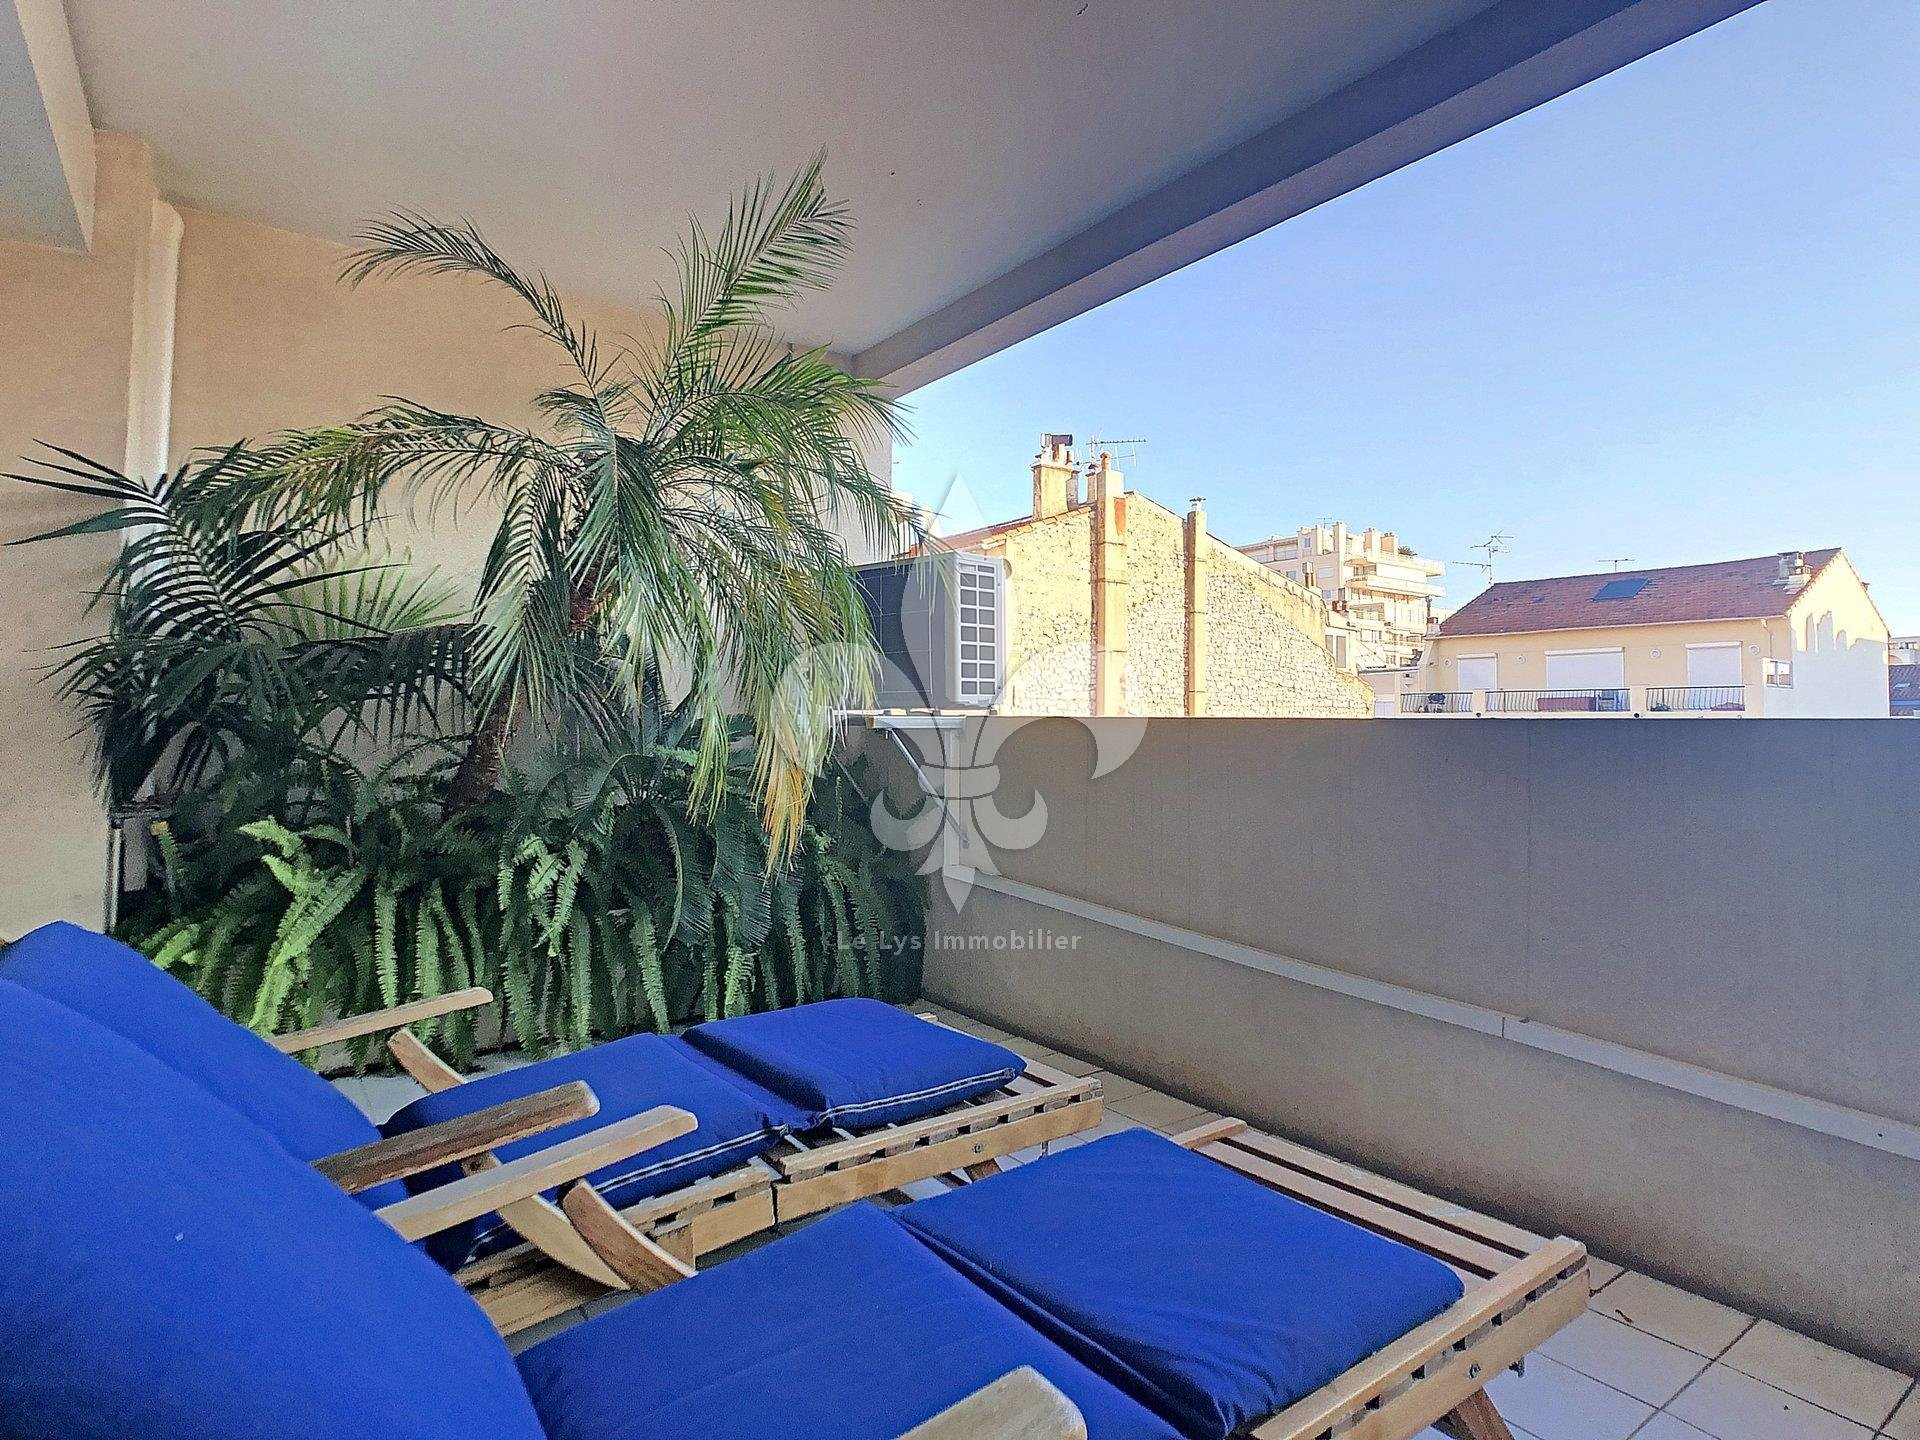 Cannes - rue d'Antibes: 2 rooms with terrace on a high floor